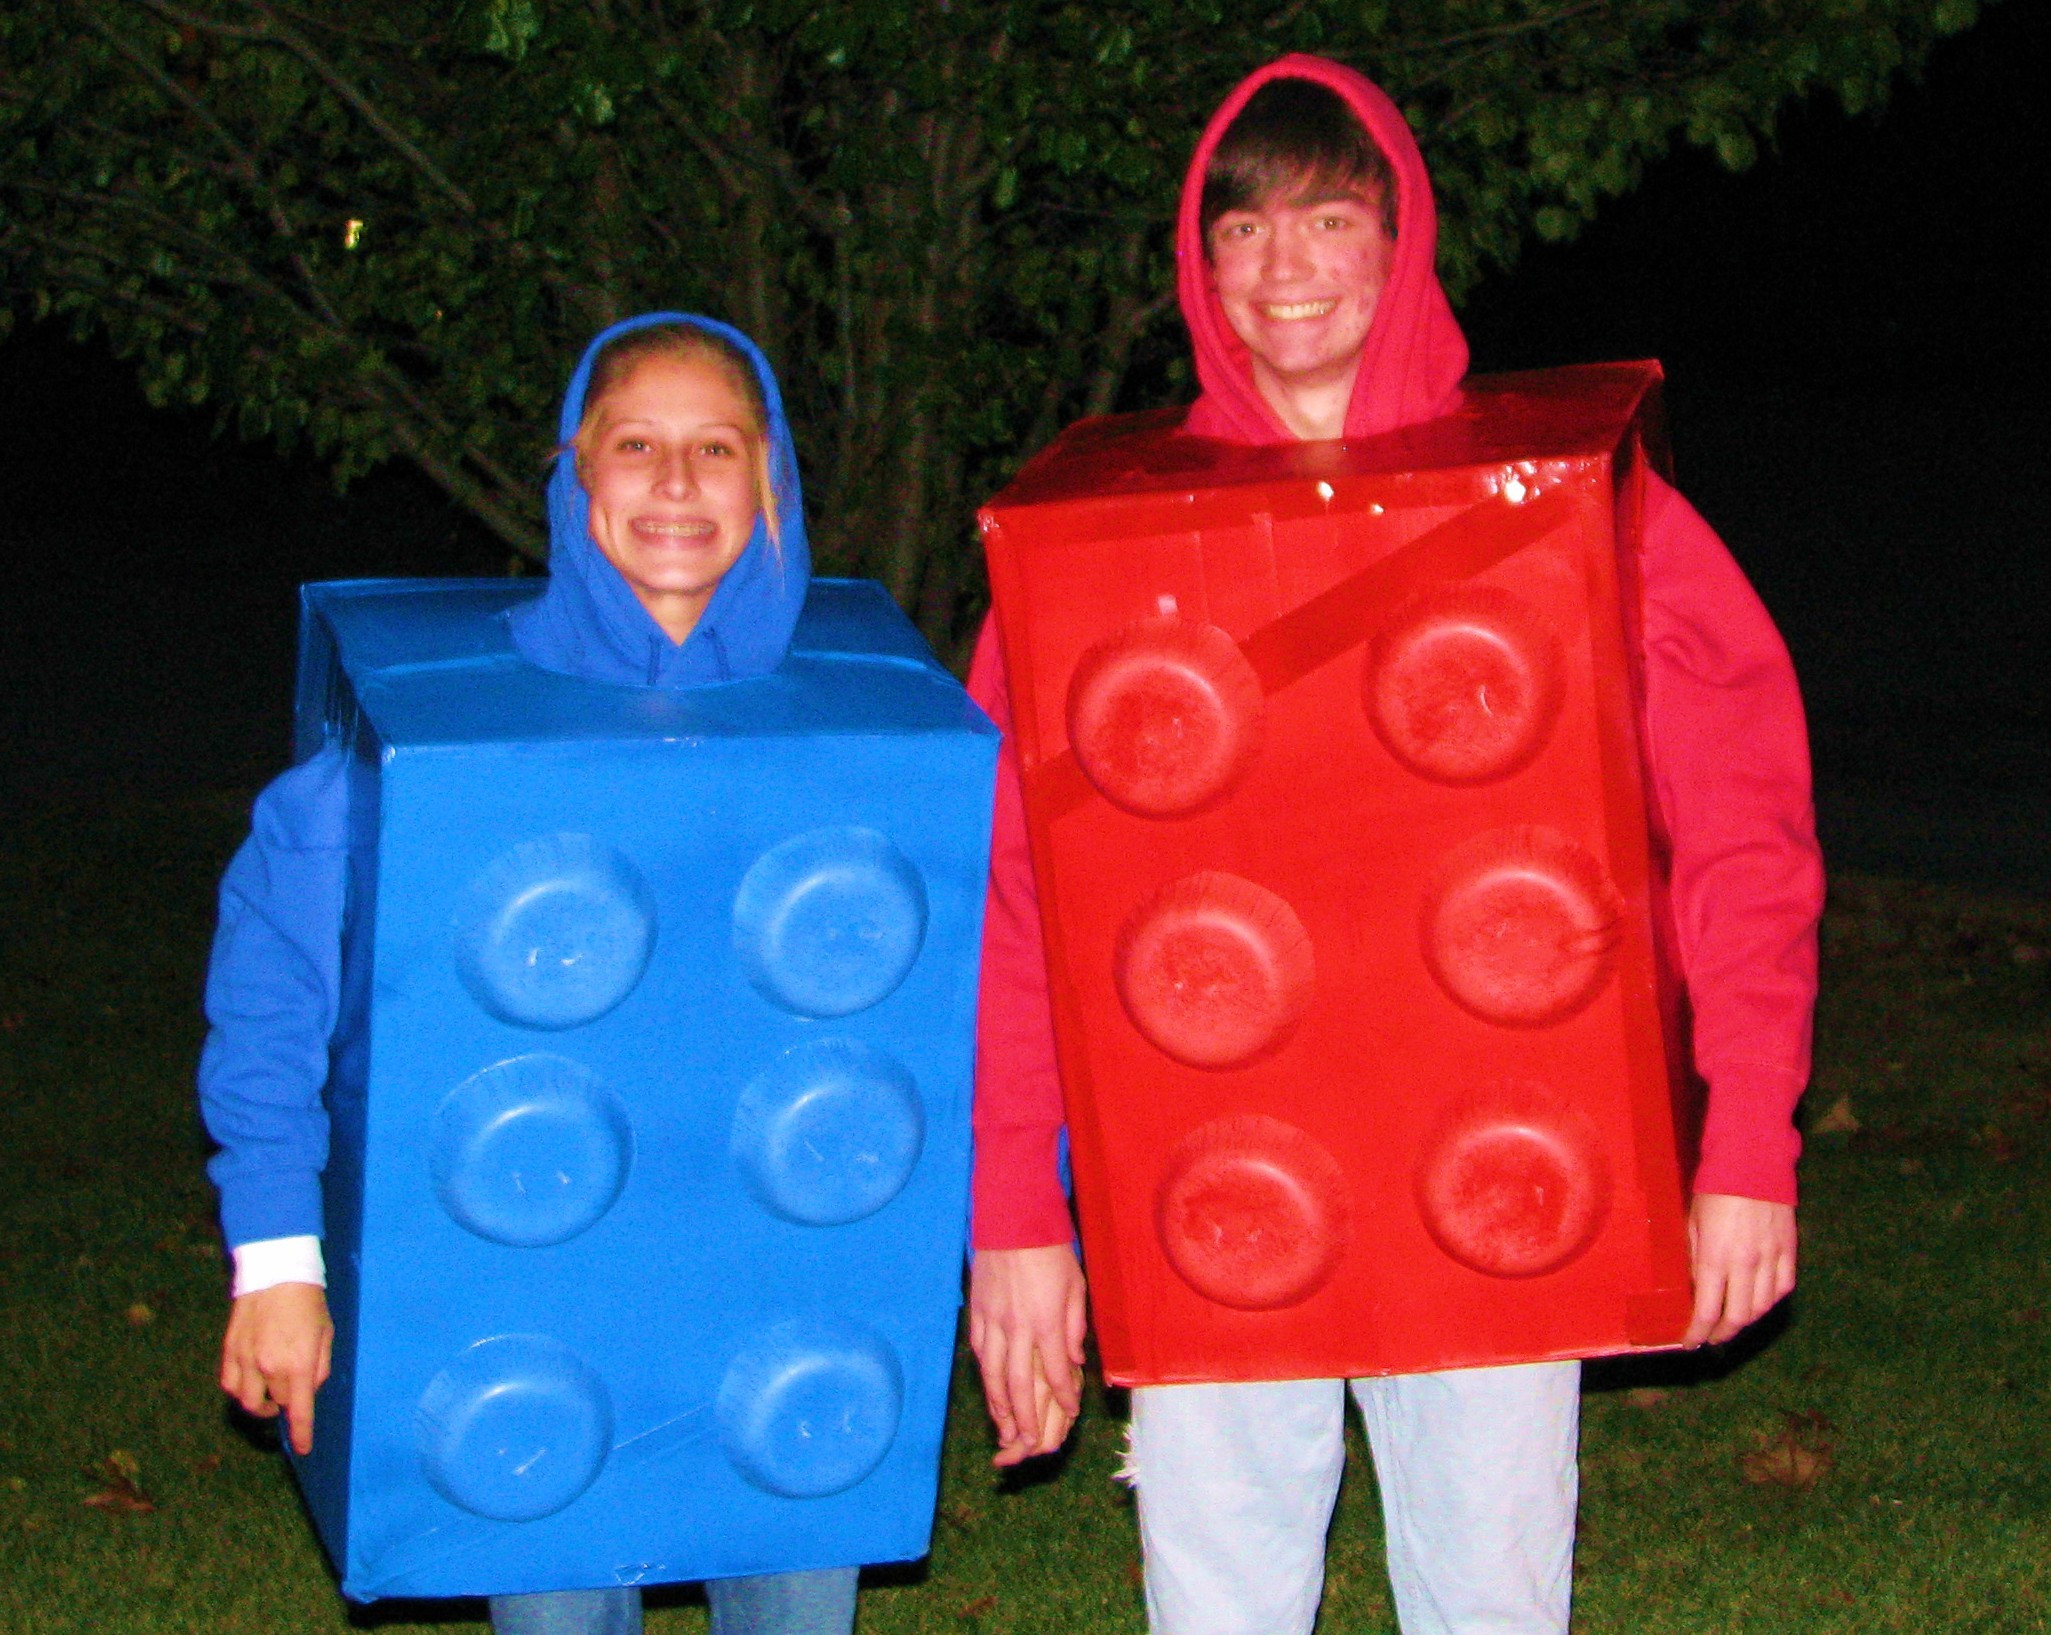 Best ideas about DIY Lego Costume . Save or Pin LEGO Halloween Costume using recycled materials Now.